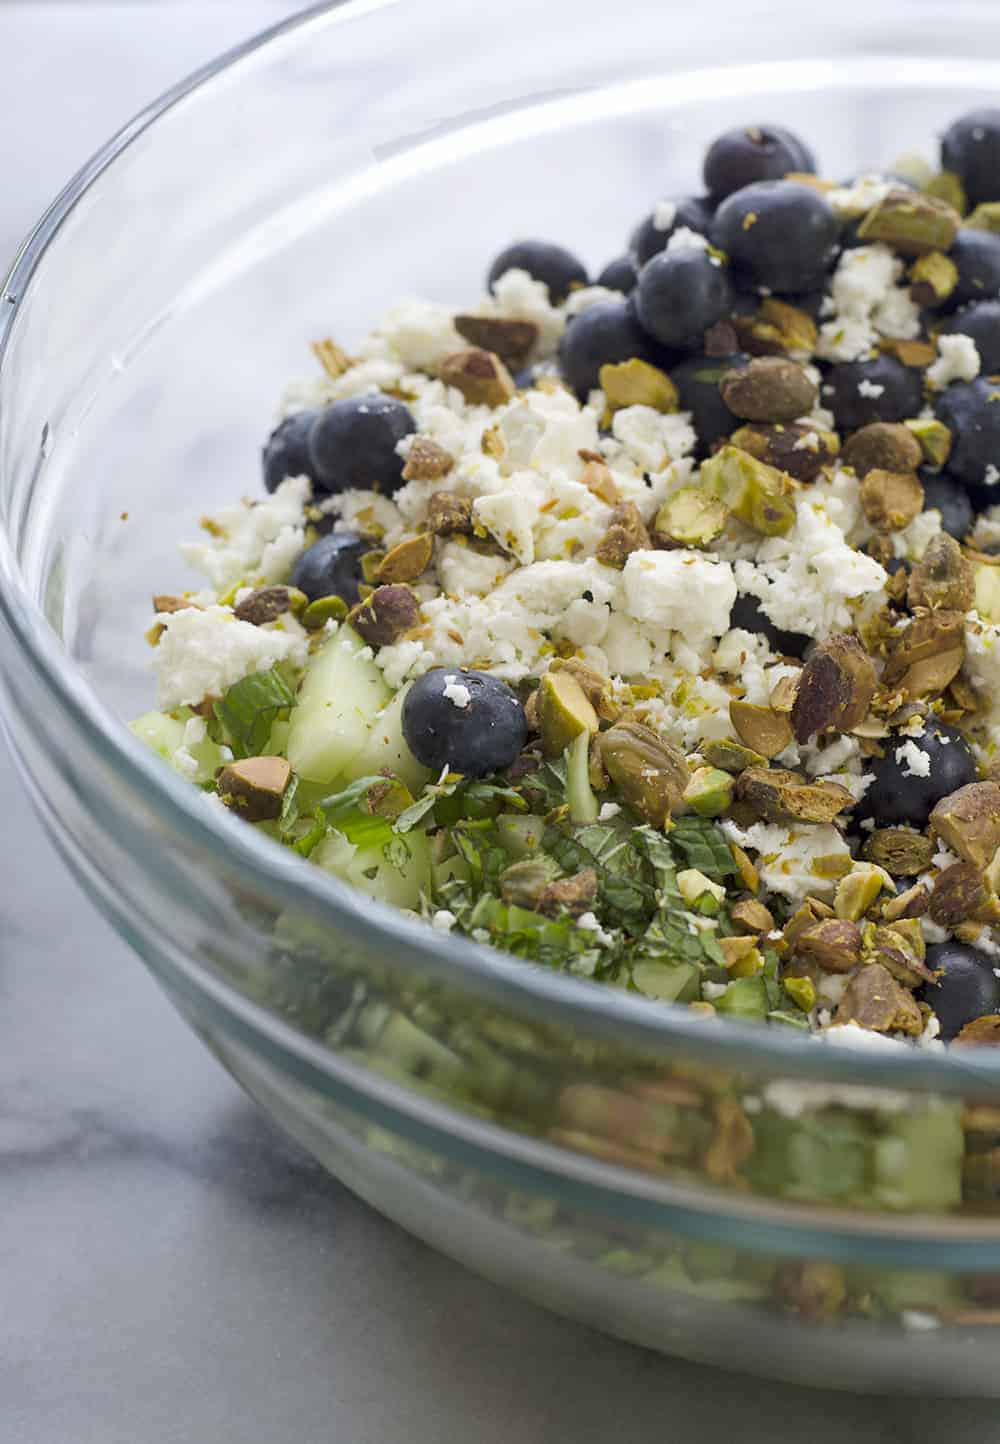 Blueberry Farro Salad! This sweet and salty salad is perfect for summer entertaining! Fresh blueberries, chewy farro, cucumber and feta in a lemon-mint dressing. Vegetarian | www.delishknowledge.com